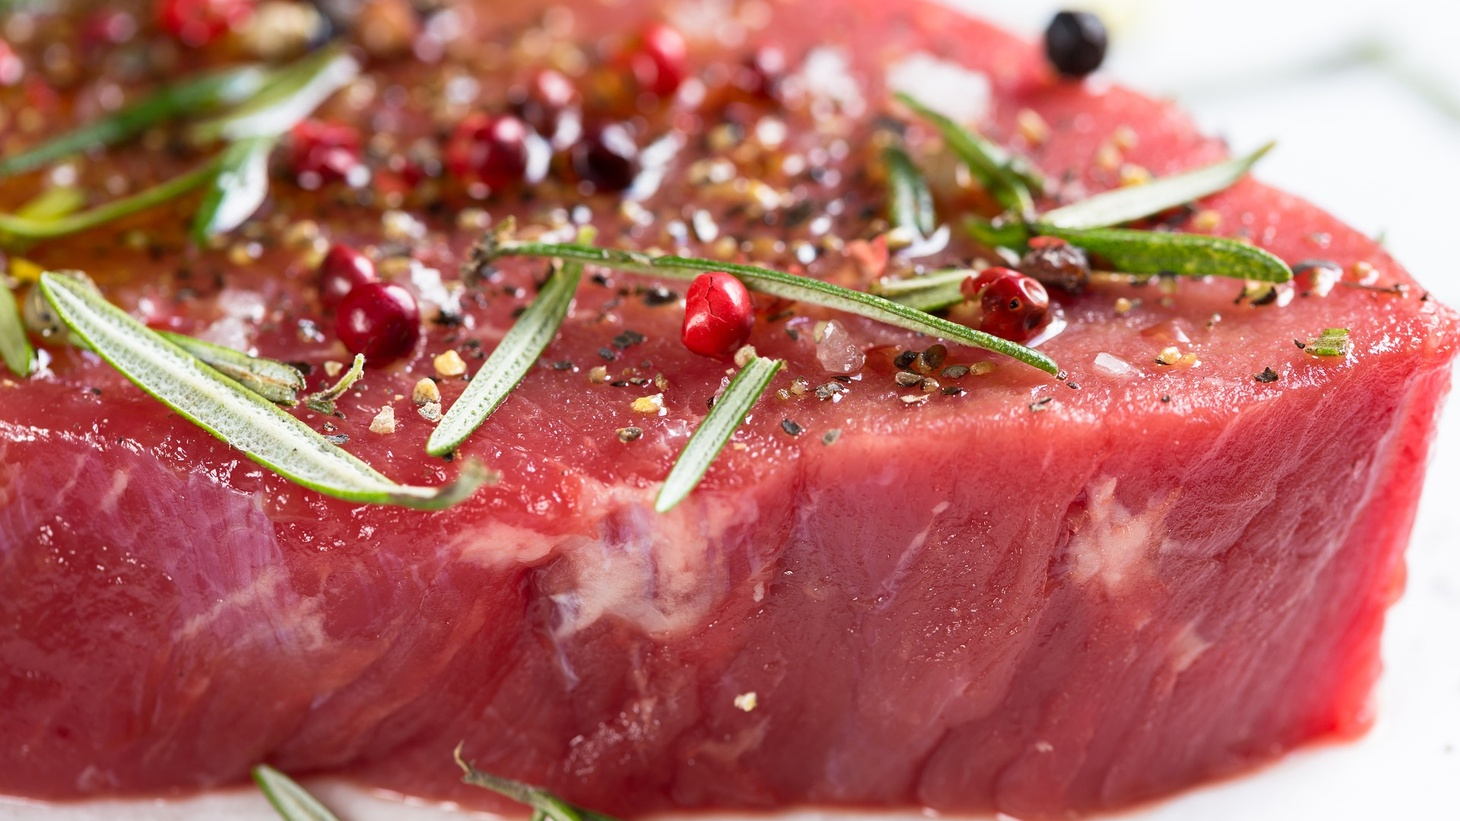 Raw marinated steak.